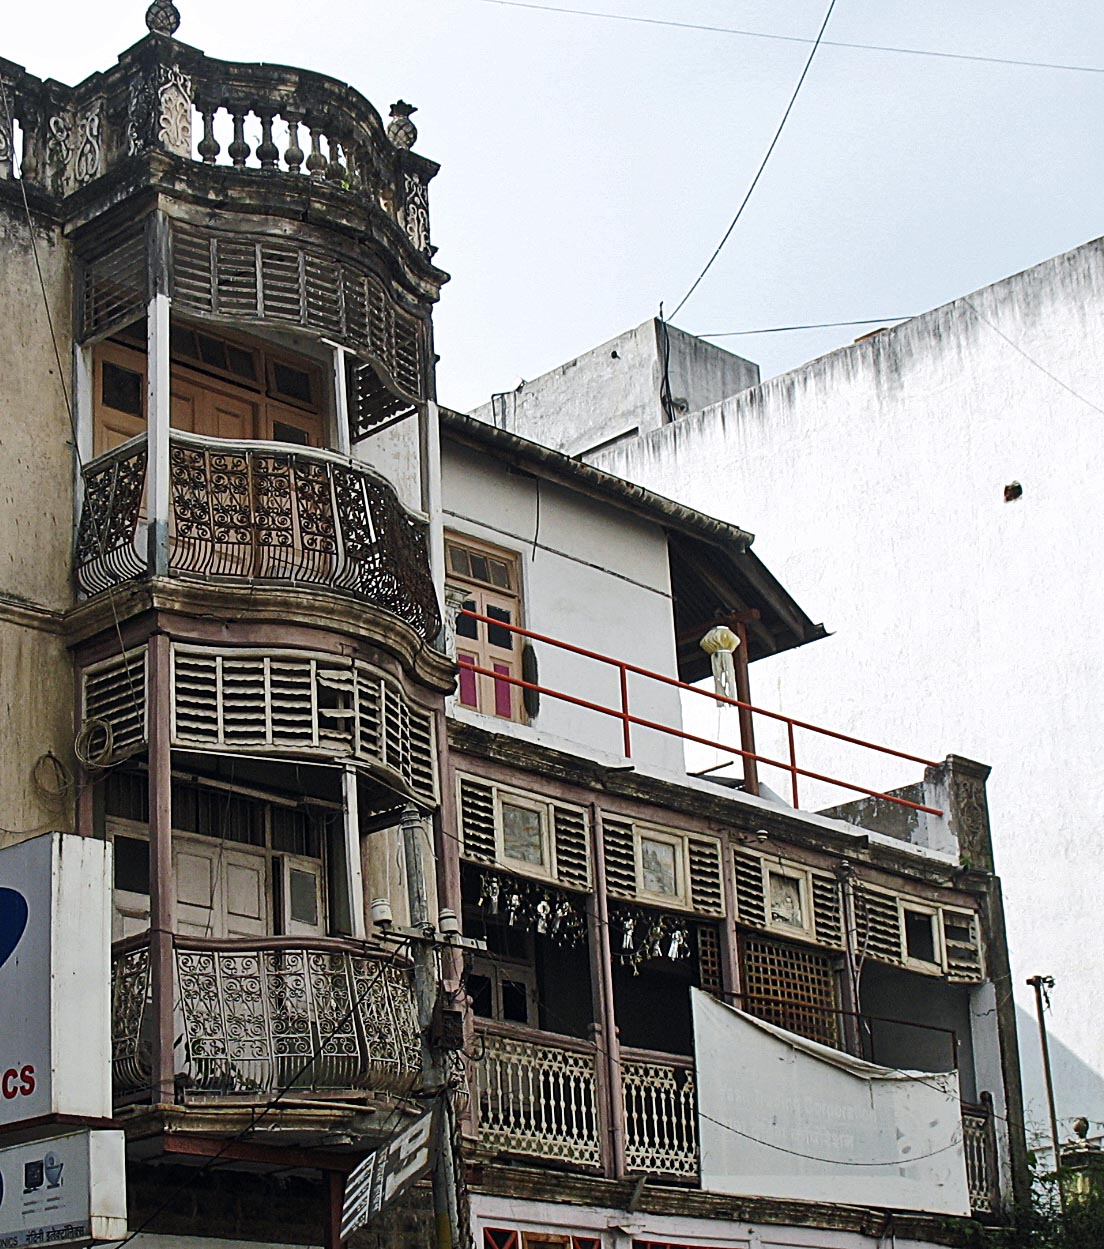 is quite a spectacularly preserved old building on Laxmi Road, Pune ...